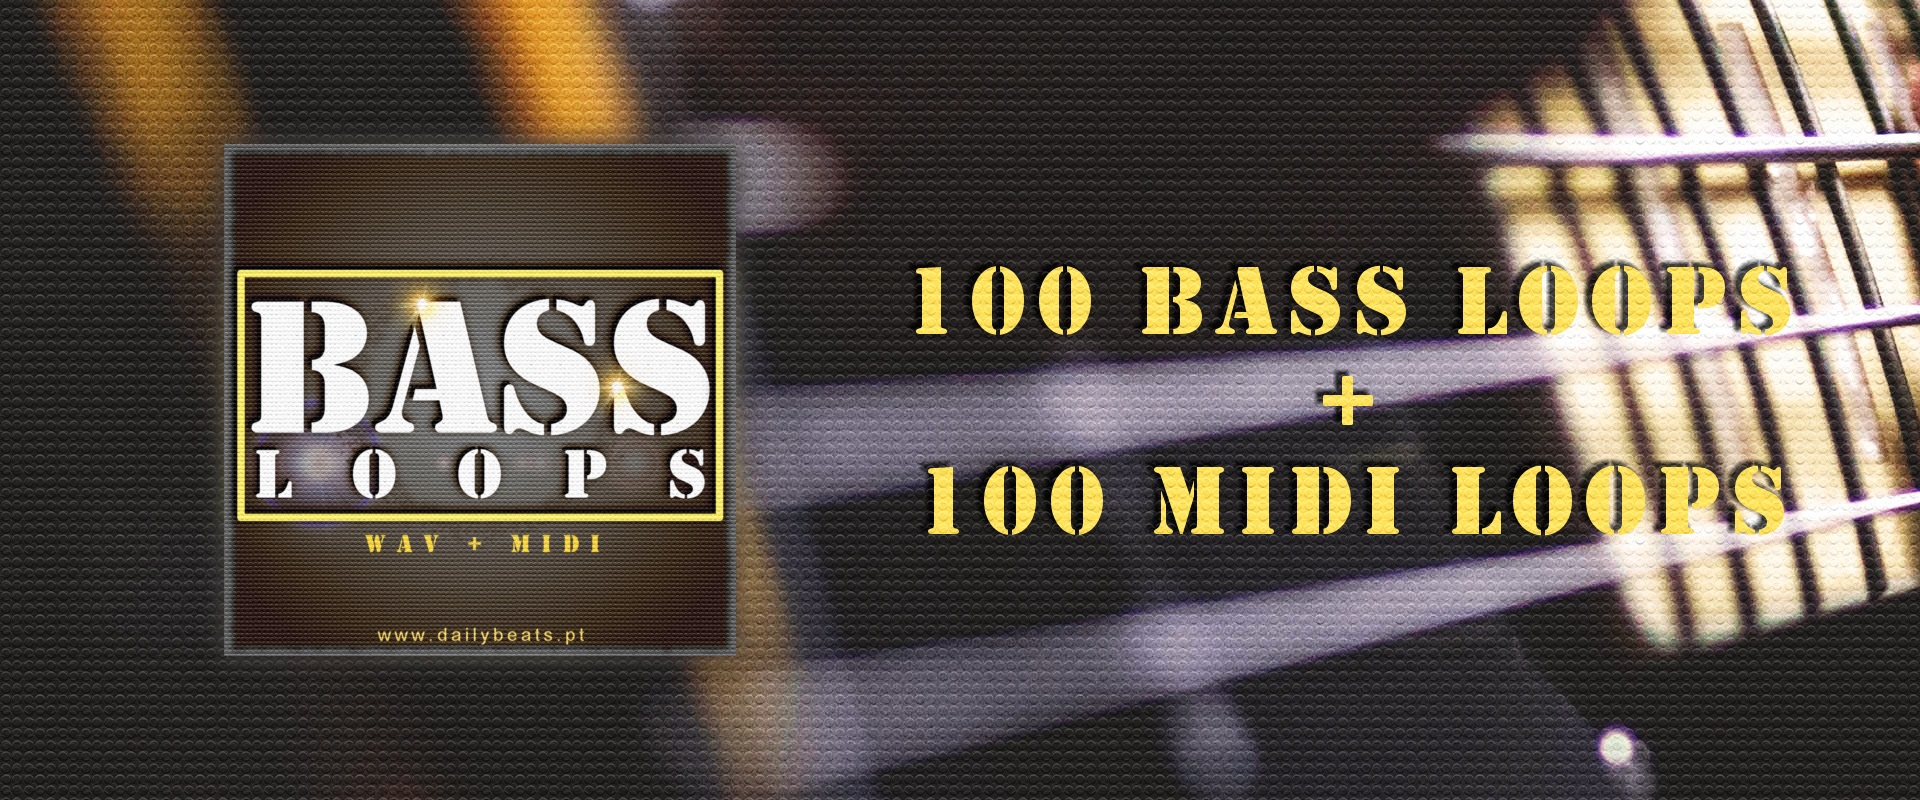 Bass Loops Banner